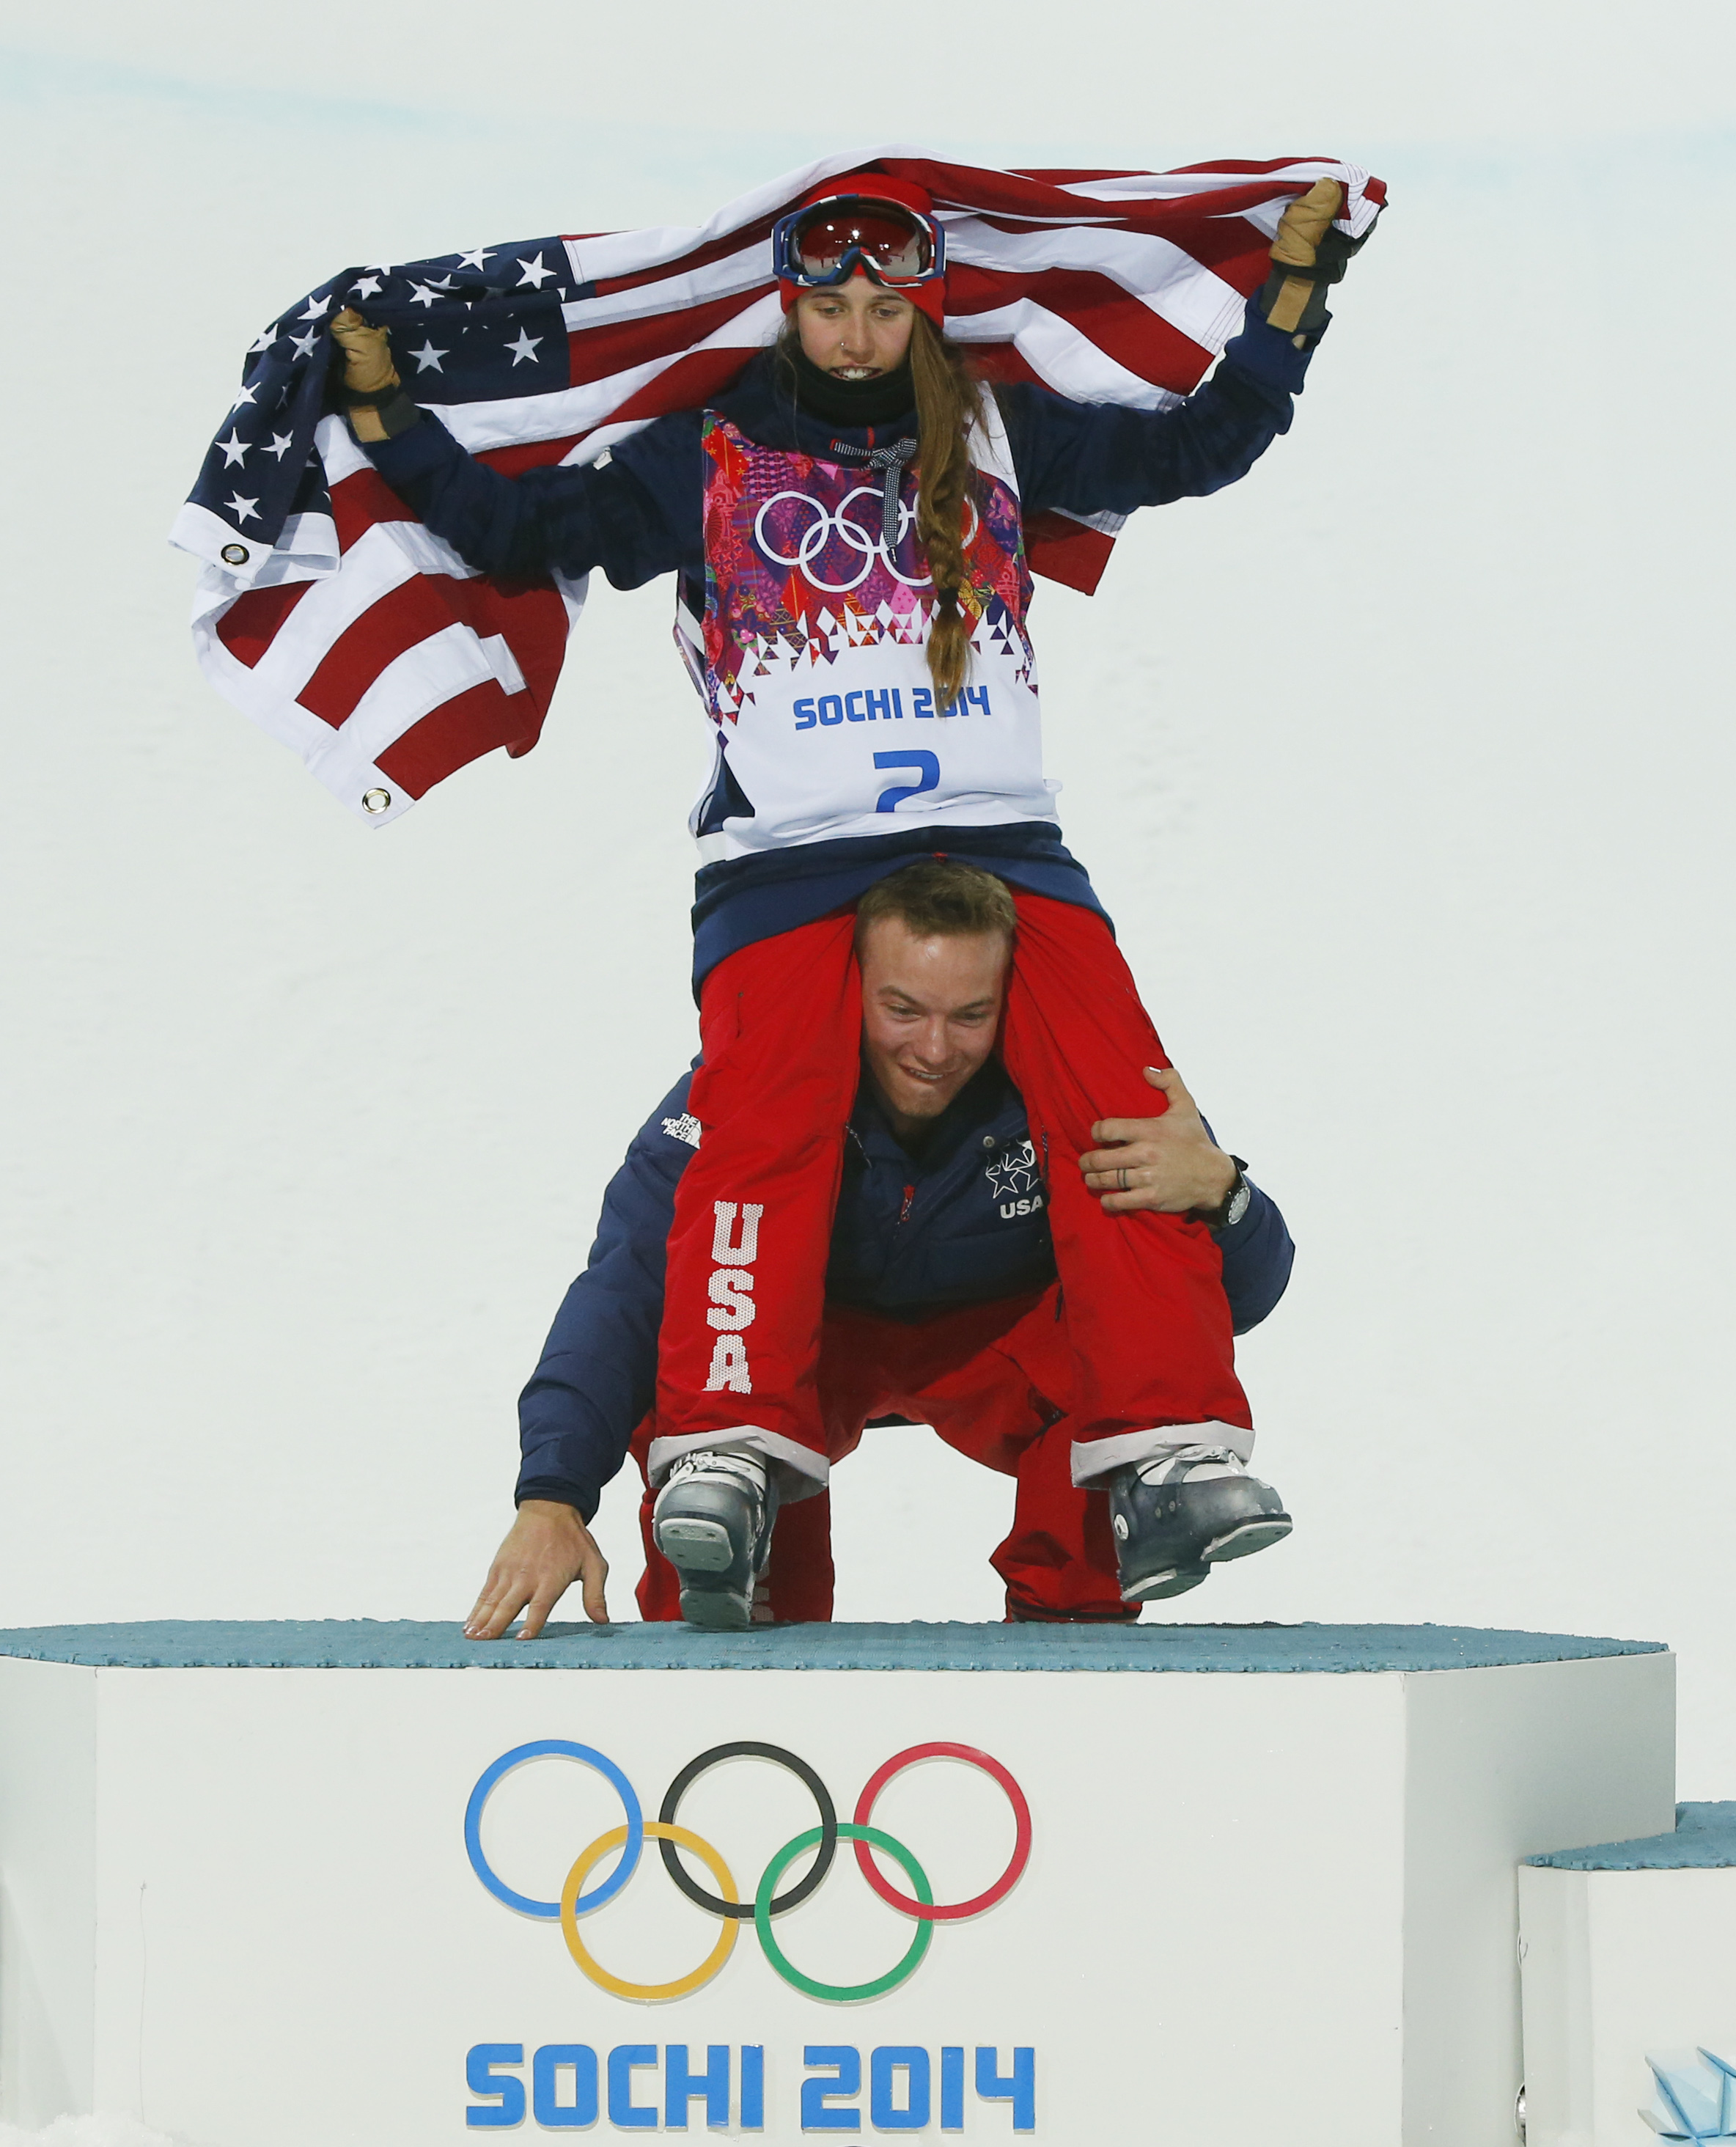 David Wise of the United States, the men's halfpipe gold medal winner, picks up Maddie Bowman of the United States after she won the gold medal in the women's ski halfpipe final, at the Rosa Khutor Extreme Park, at the 2014 Winter Olympics, Thursday, Feb. 20, 2014, in Krasnaya Polyana, Russia.(AP Photo/Sergei Grits)